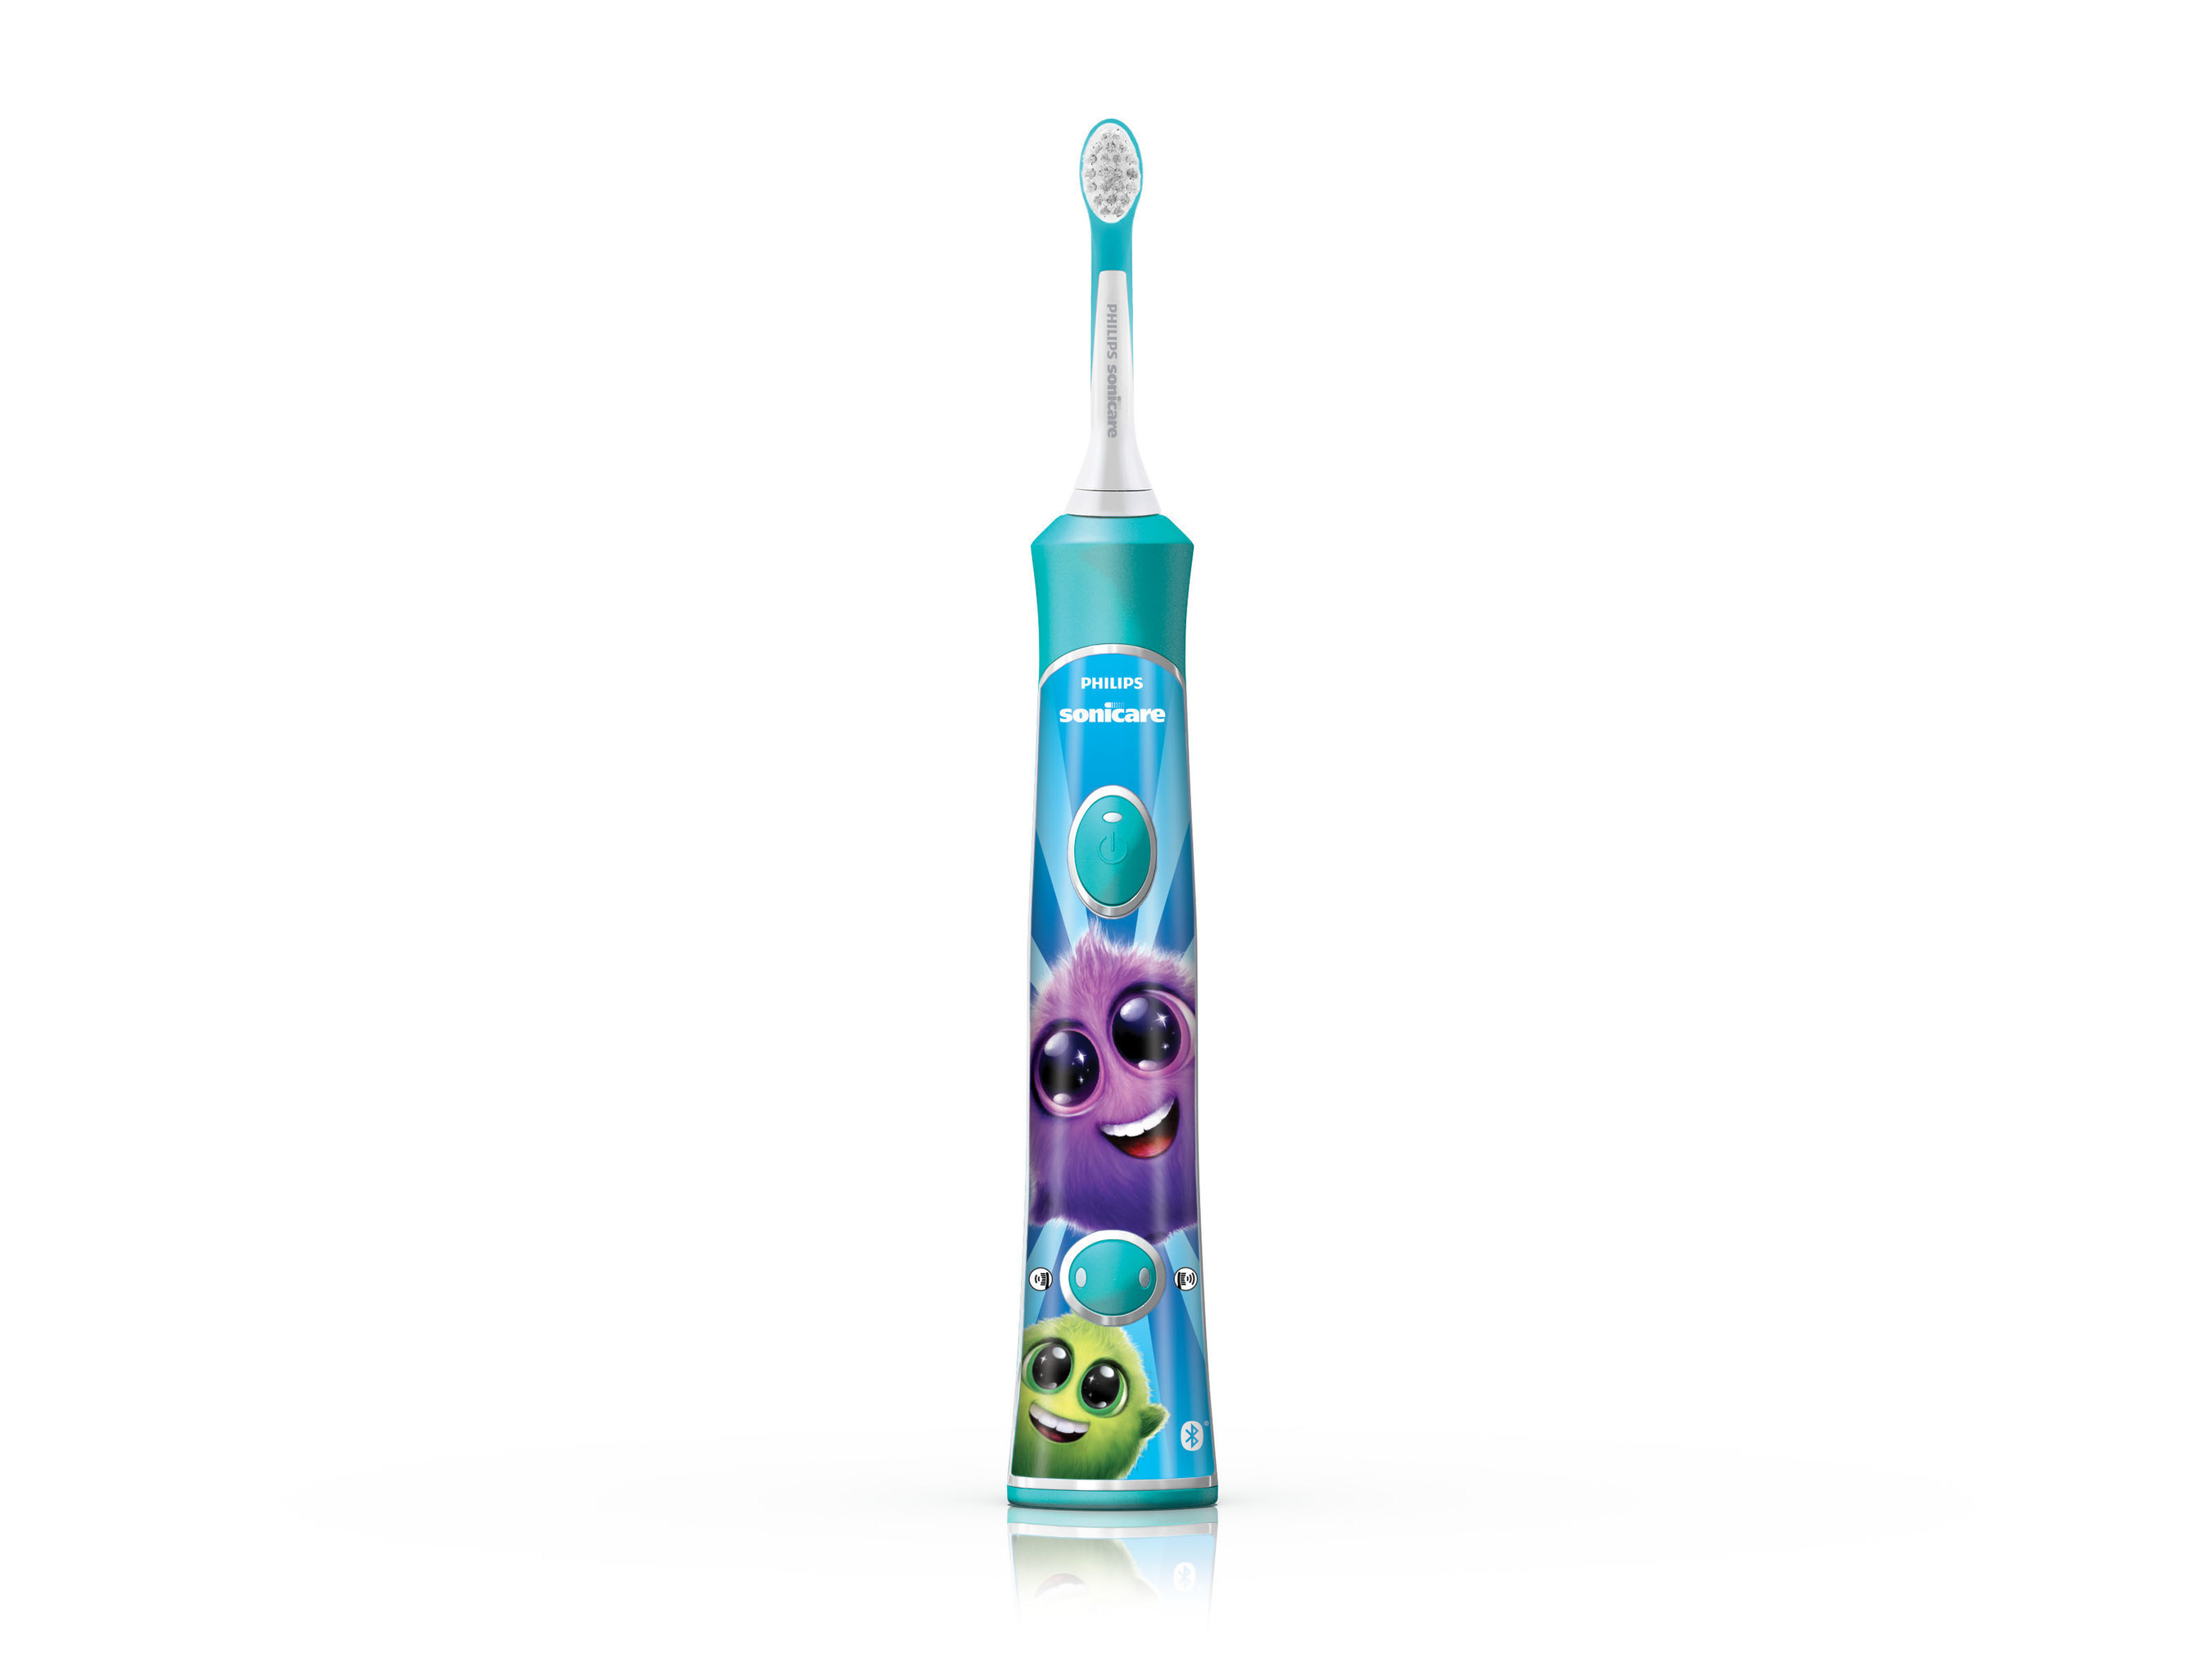 Philips Sonicare teams up with its toughest critic yet - kids - to put its newest power toothbrush and connected app to the test